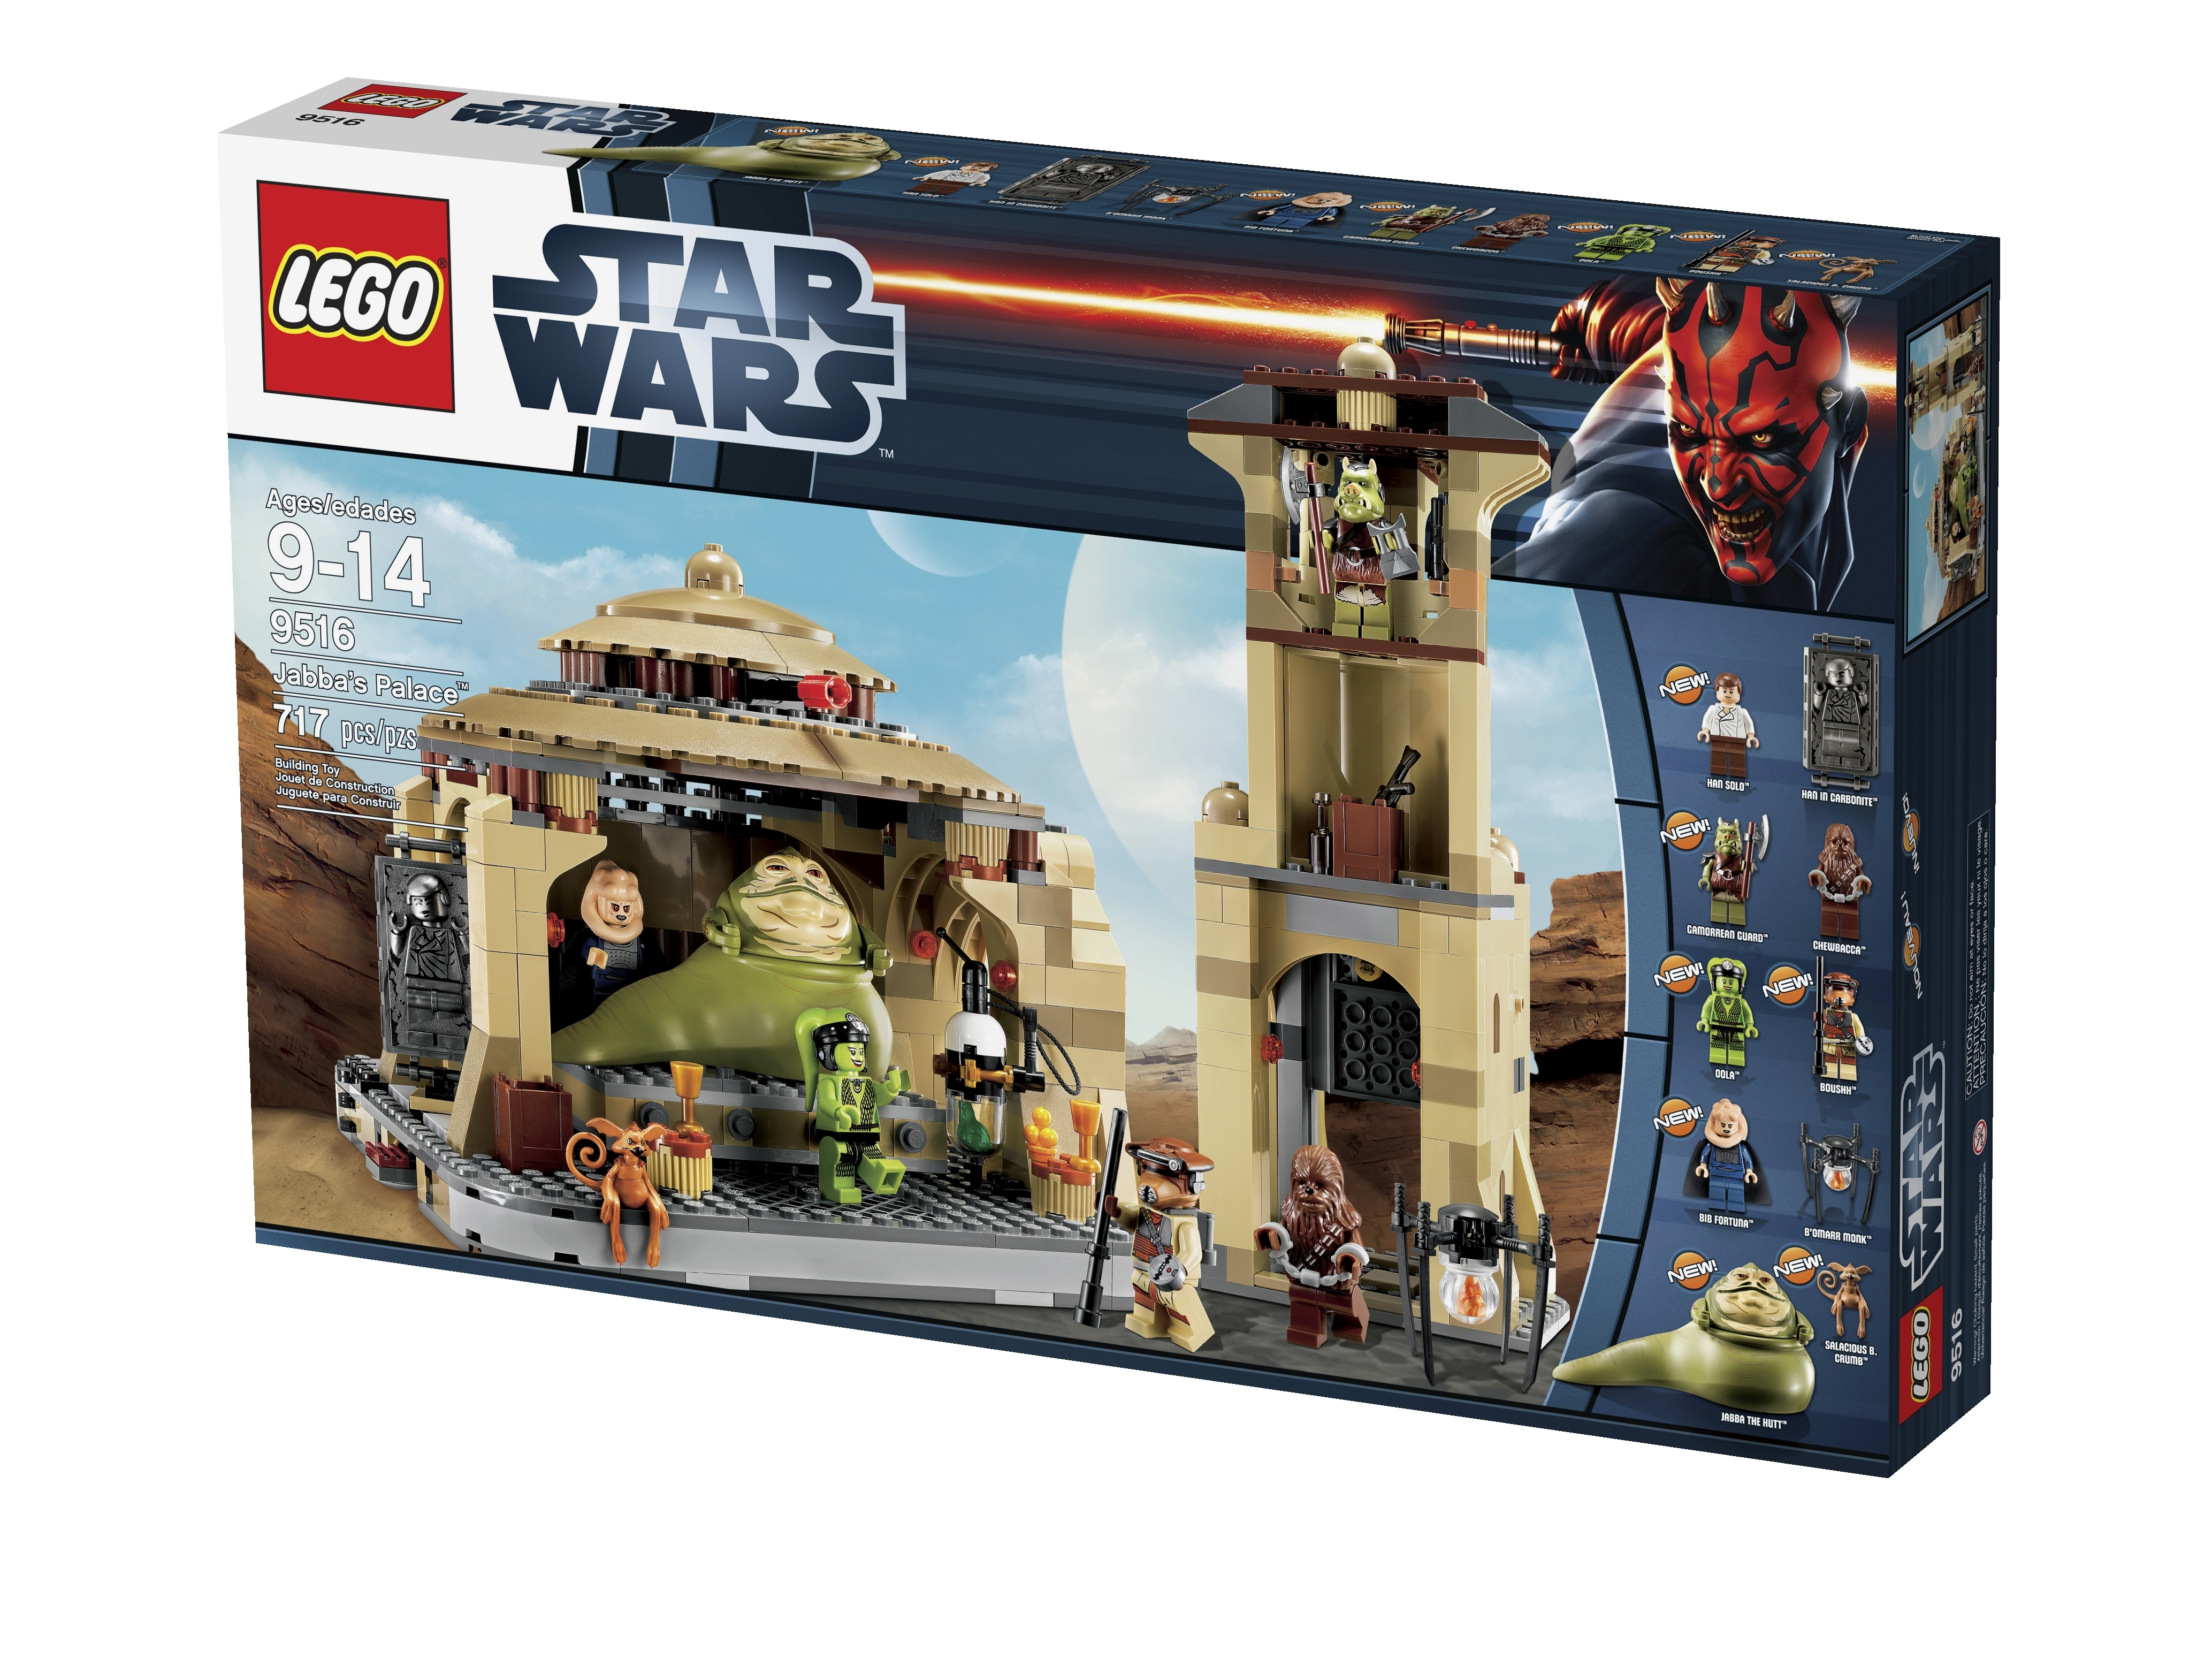 Lego created the Lego Friends in part because it was selling little to girls from the adventure franchise-themed sets like the ones from Star Wars.